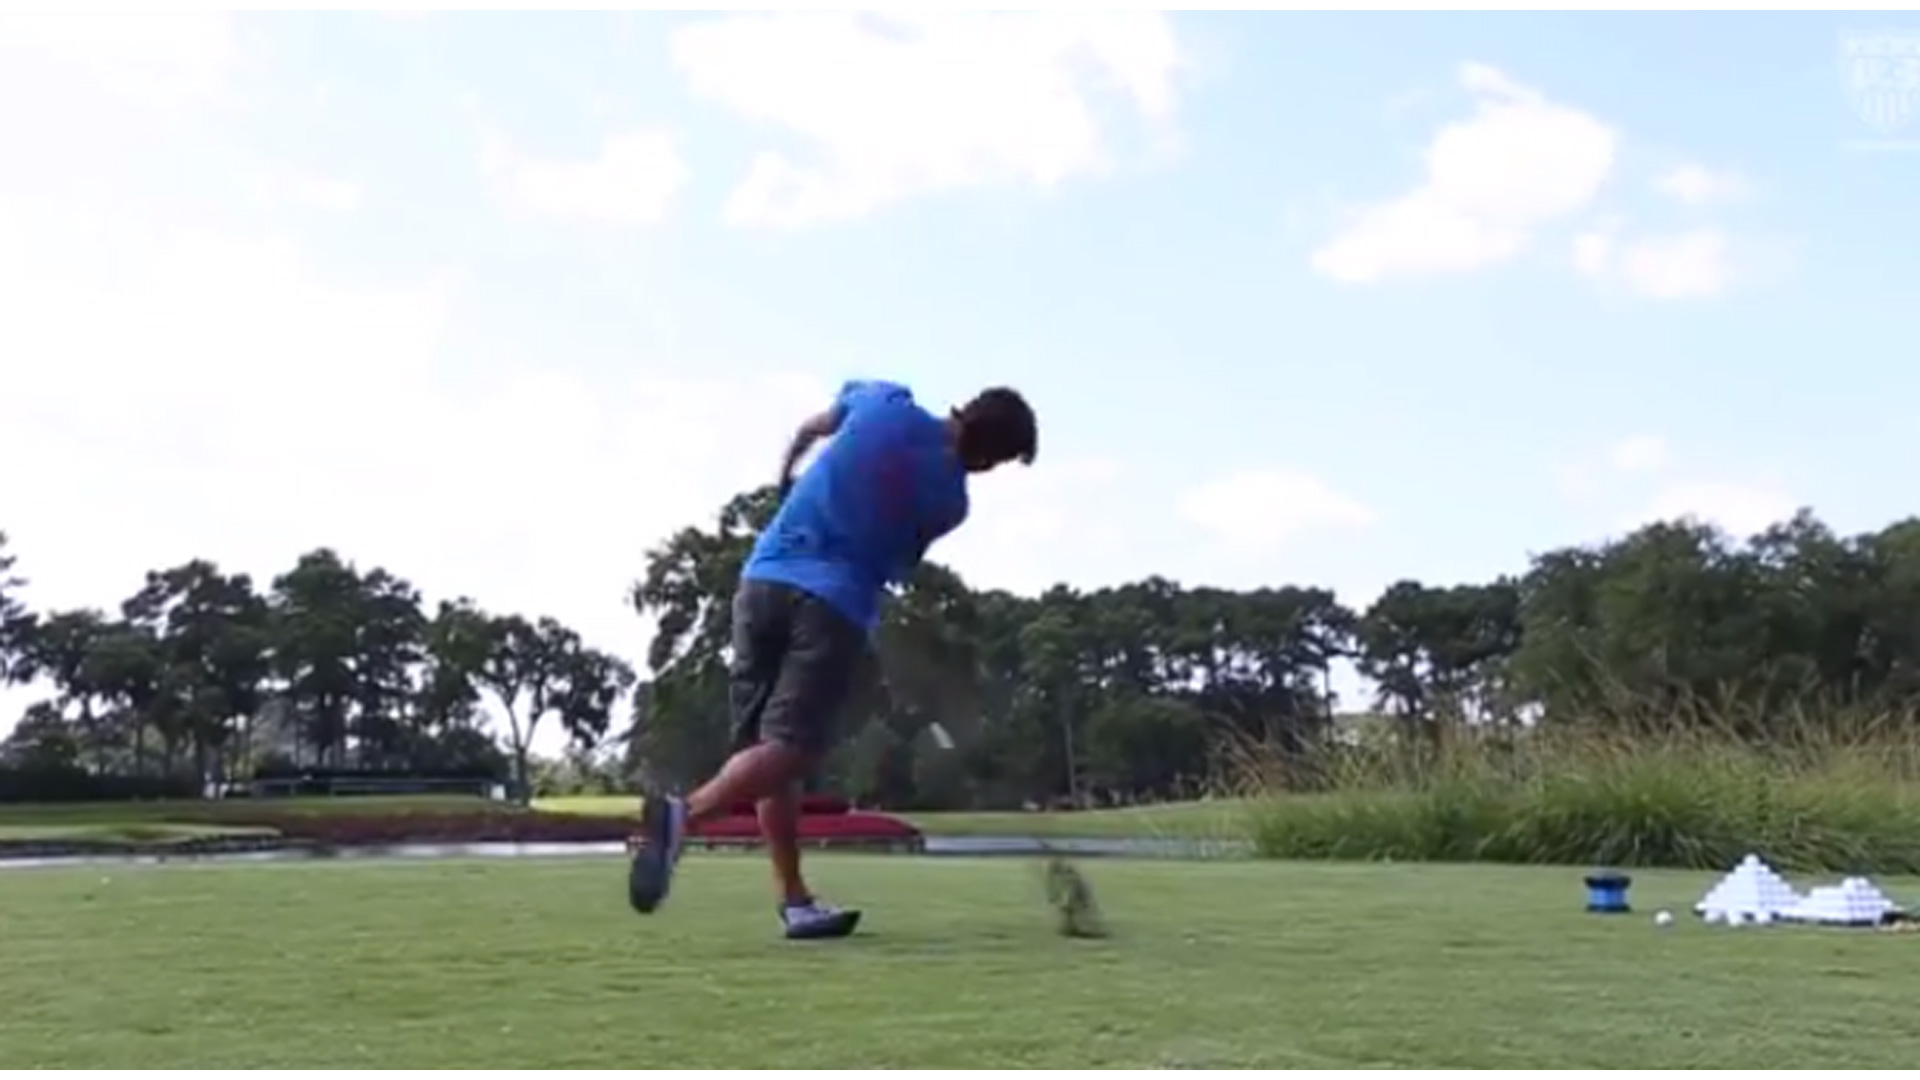 wondolowski-golf-060714-youtube-ftr